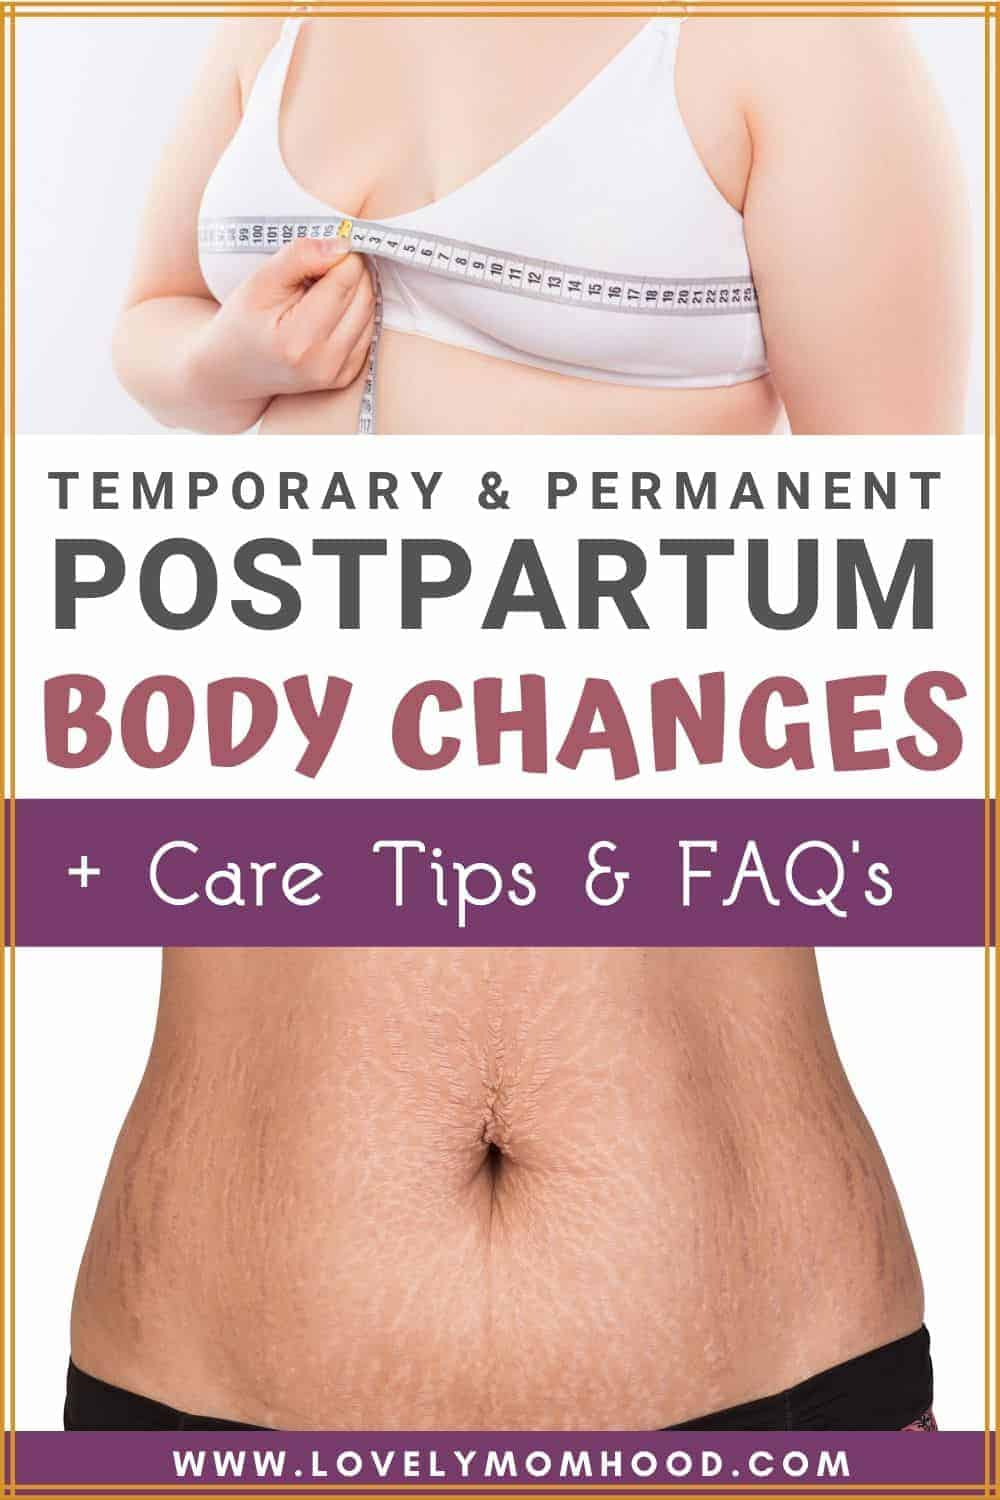 temporary and permanent postpartum body changes, postpartum care tips